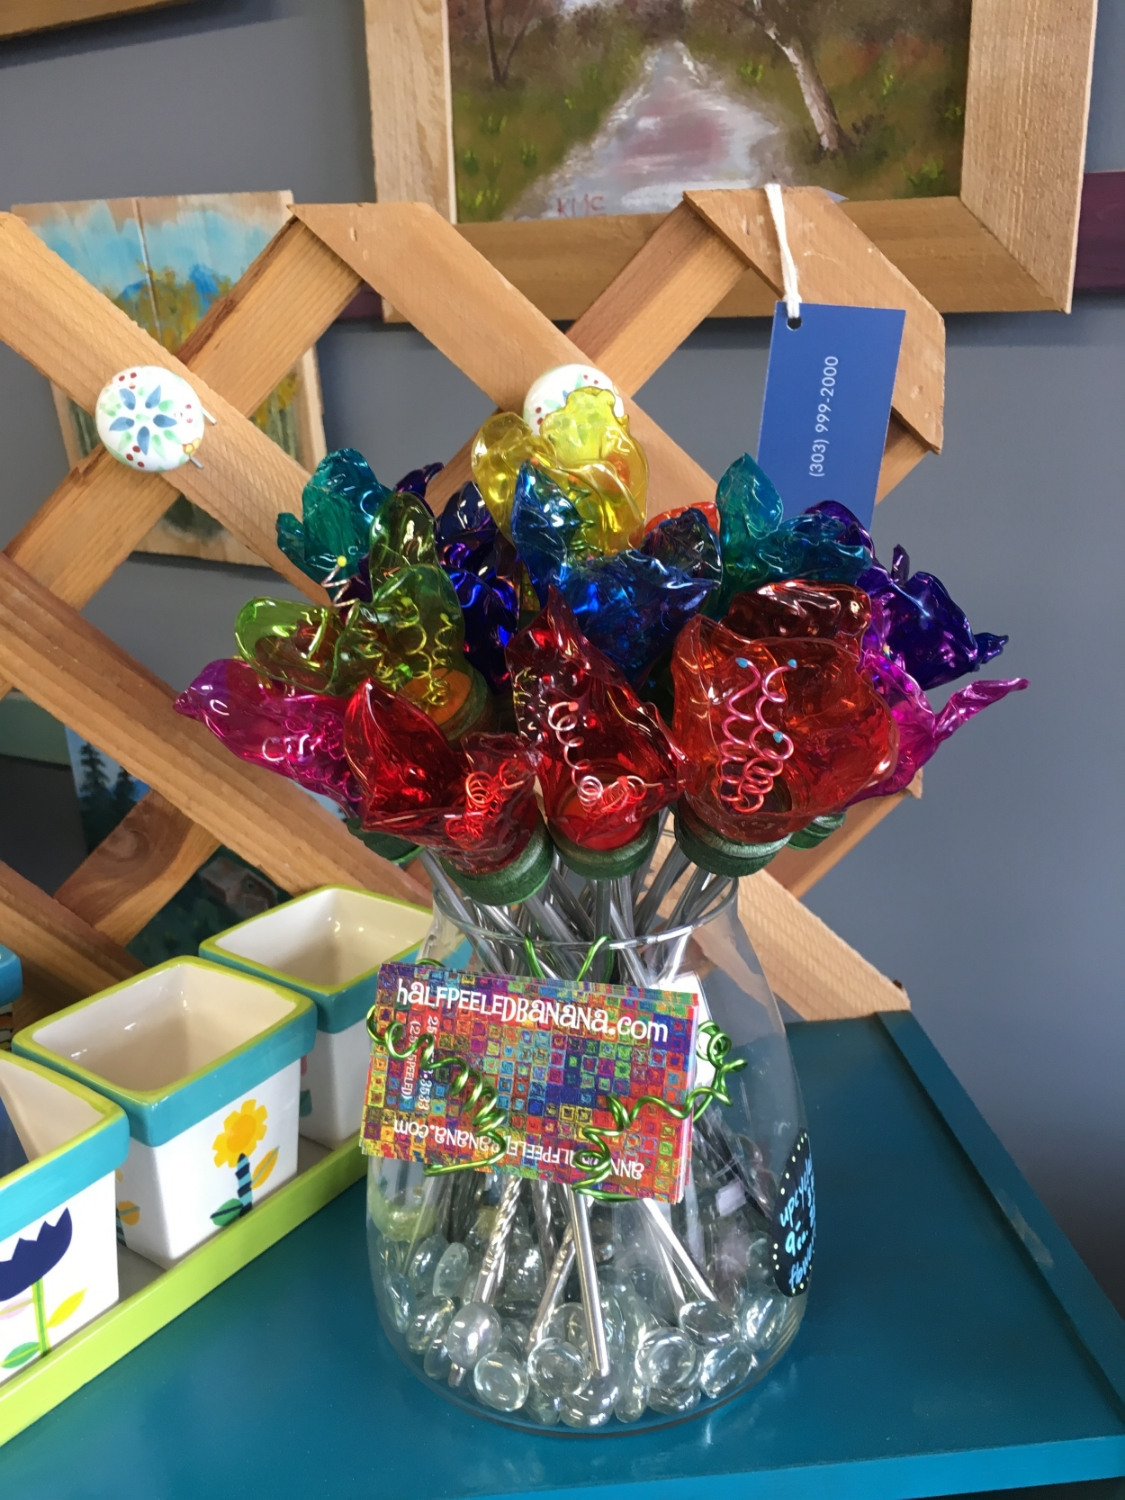 add some color to your world!! upcycled water bottle flowers by ann vanatta gutierrez